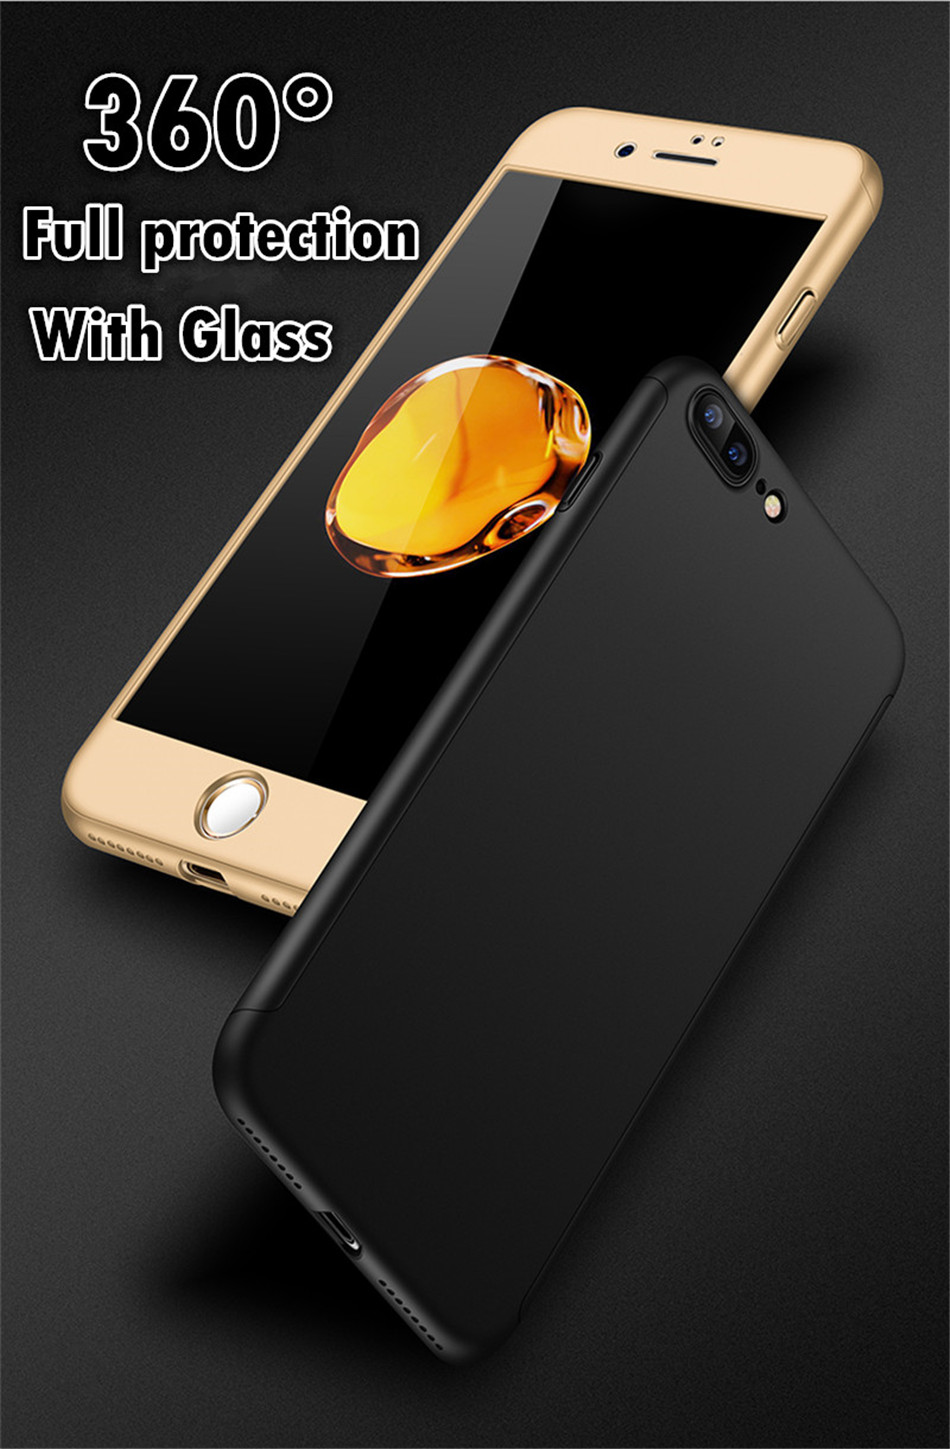 10 Full protection iphone XS case